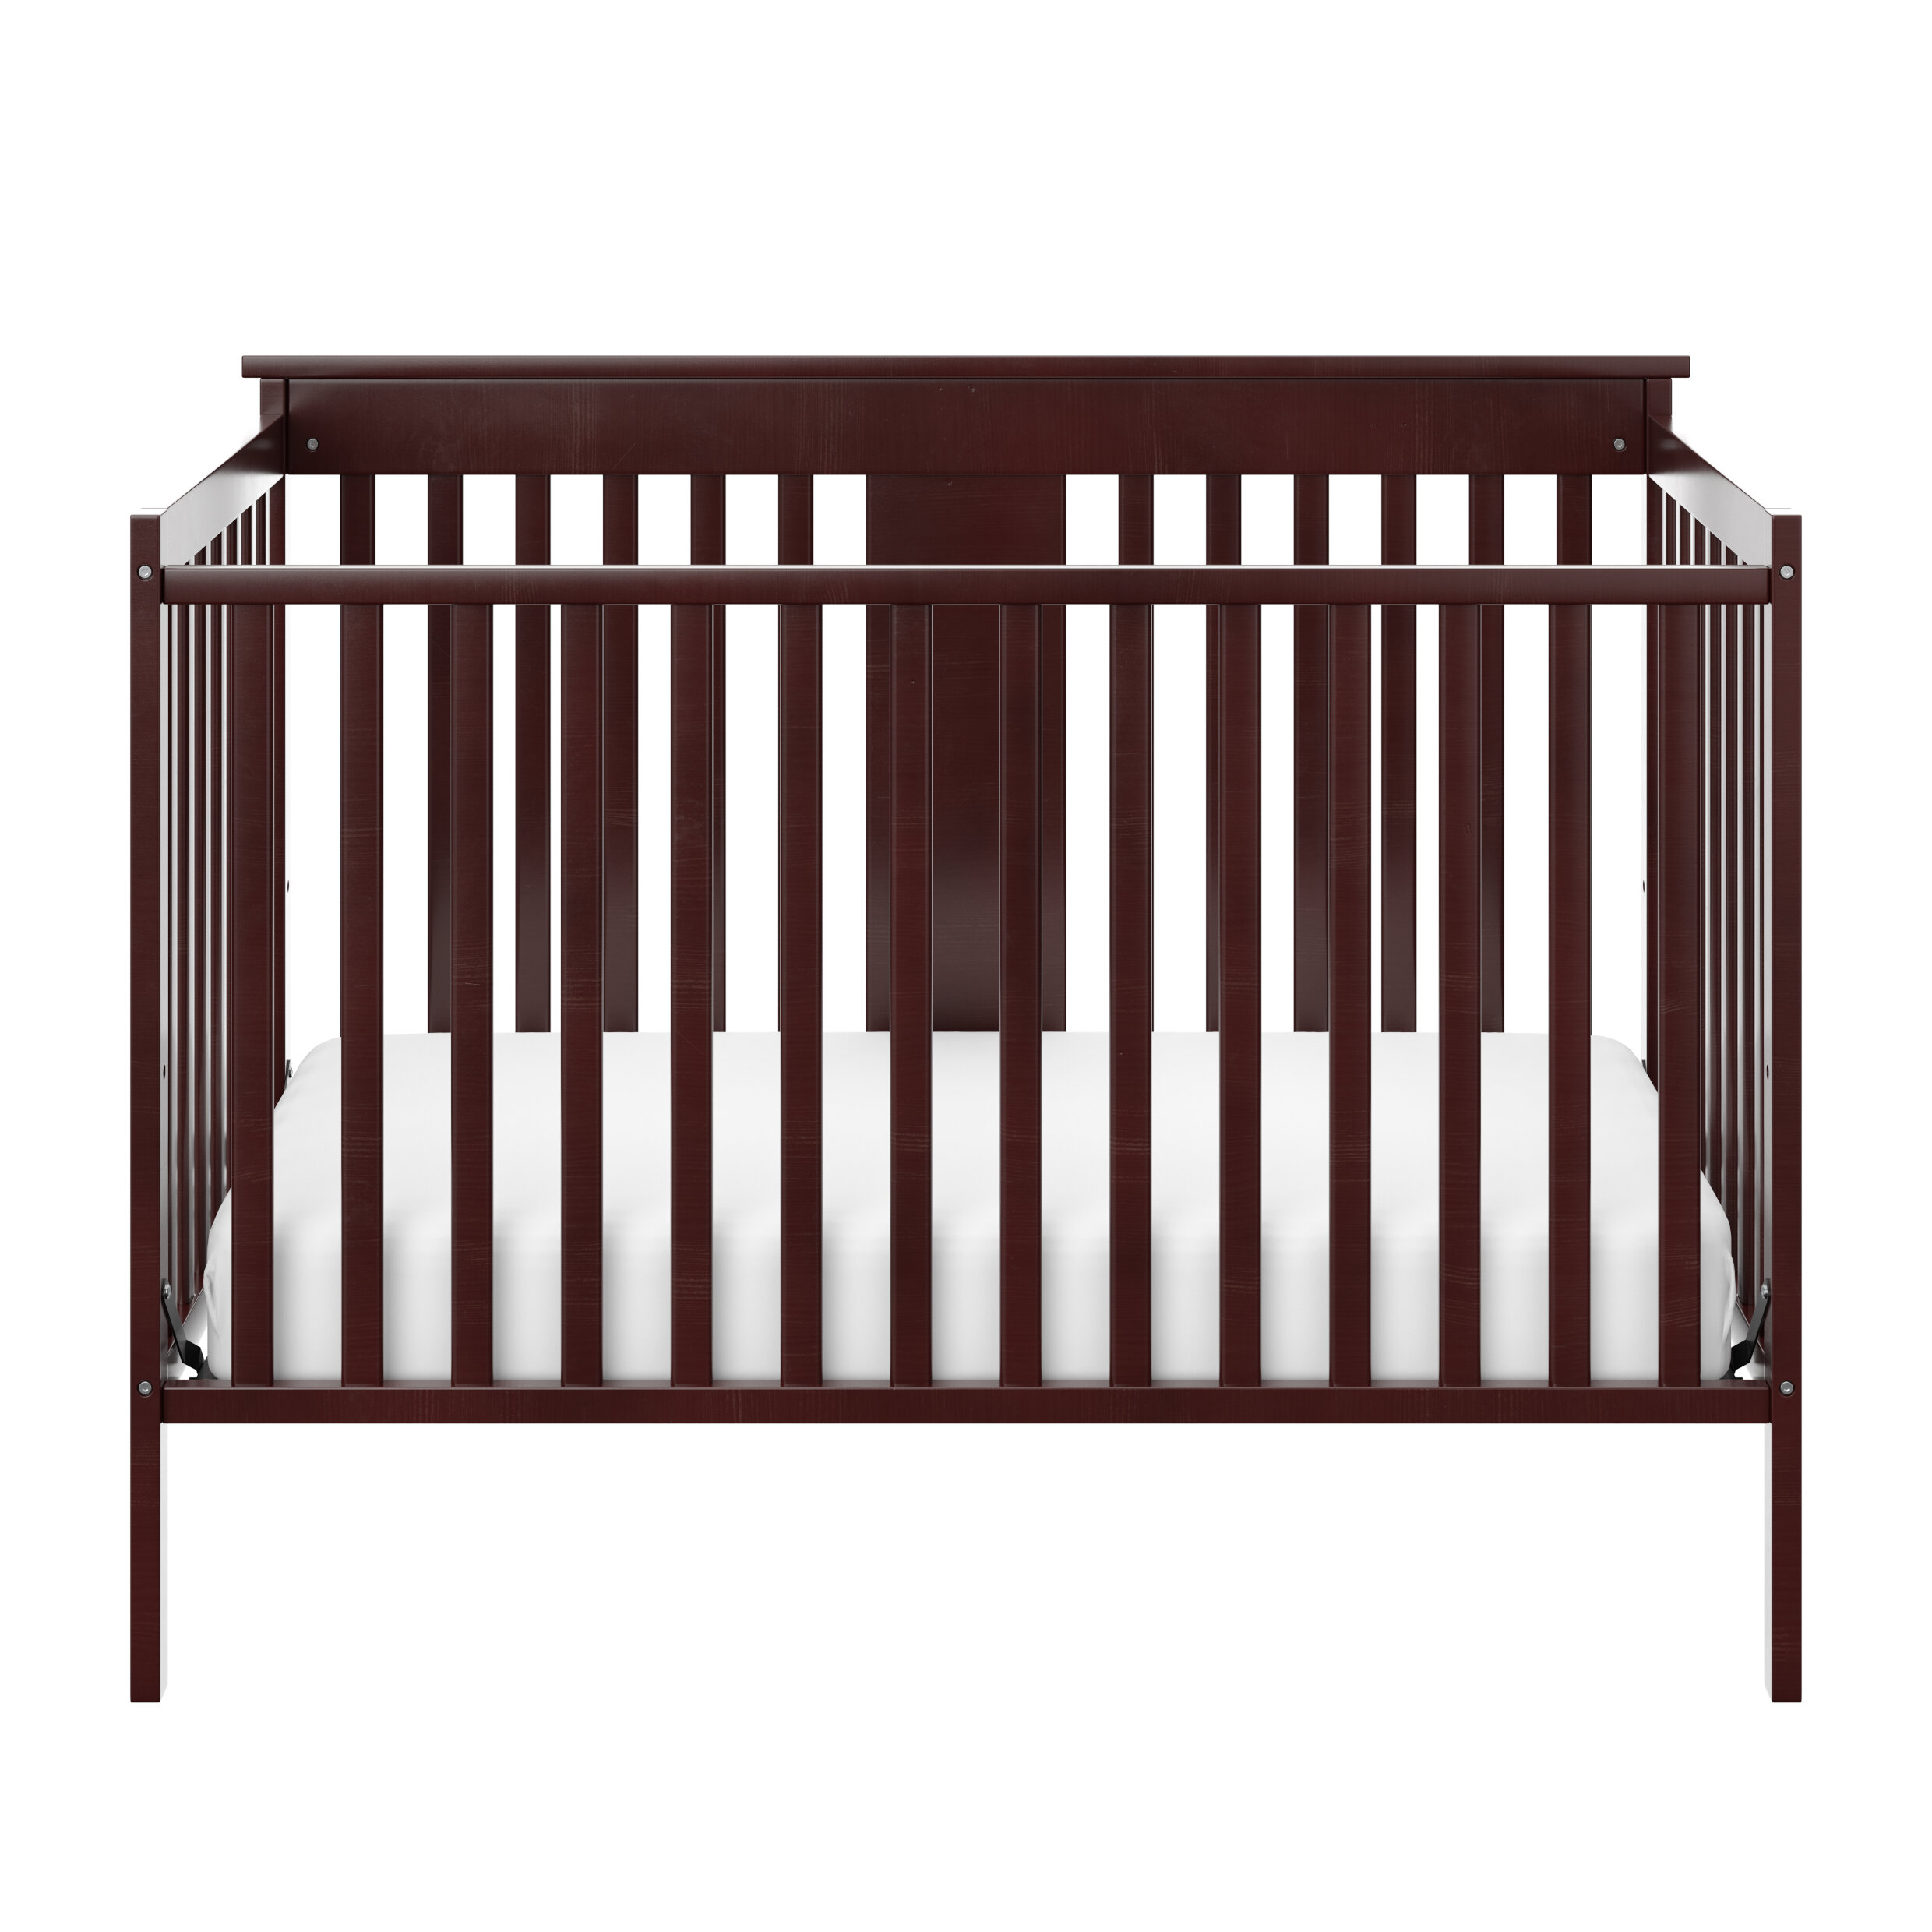 princess scandinavian folding r walnut mid baby in tuscany bedroom breathtaking stork natural modern cribs wood canopy babies mod combo convertible crib us century storkcraft craft munire changer red